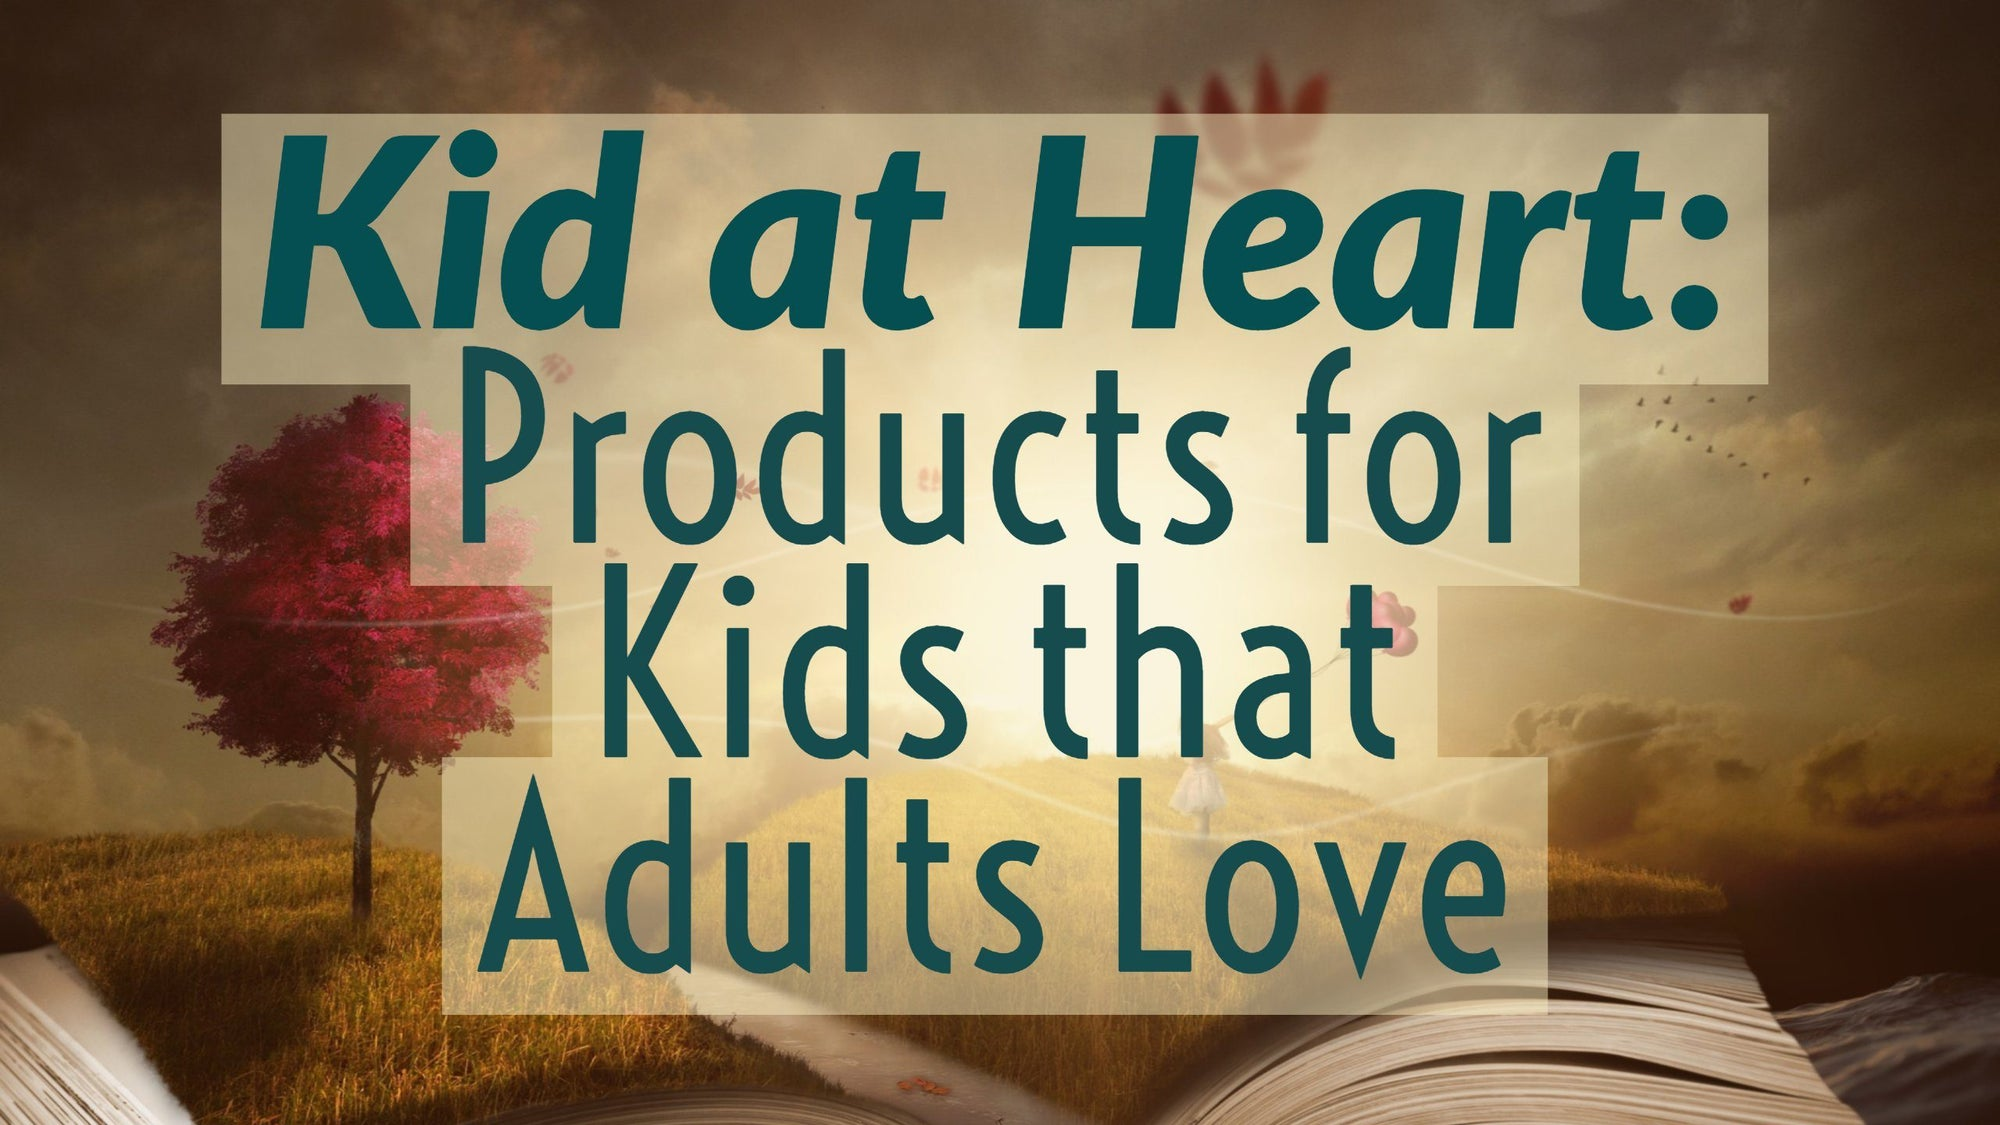 Kids at Heart: 3 Products for Children That Adults Love Too!